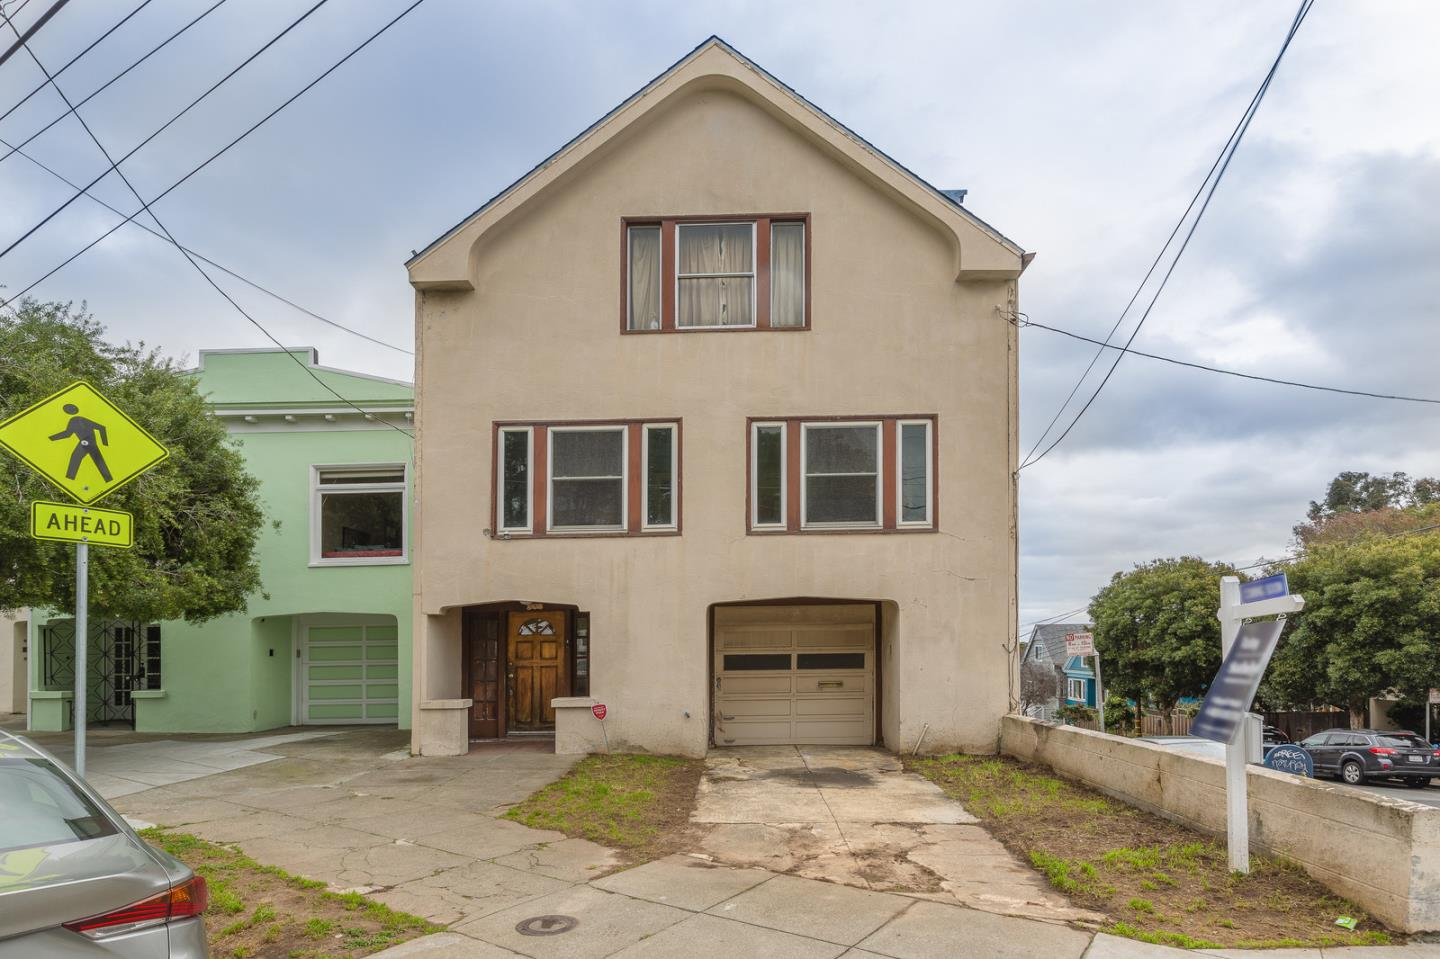 Image for 345 Holly Park Circle, <br>San Francisco 94110